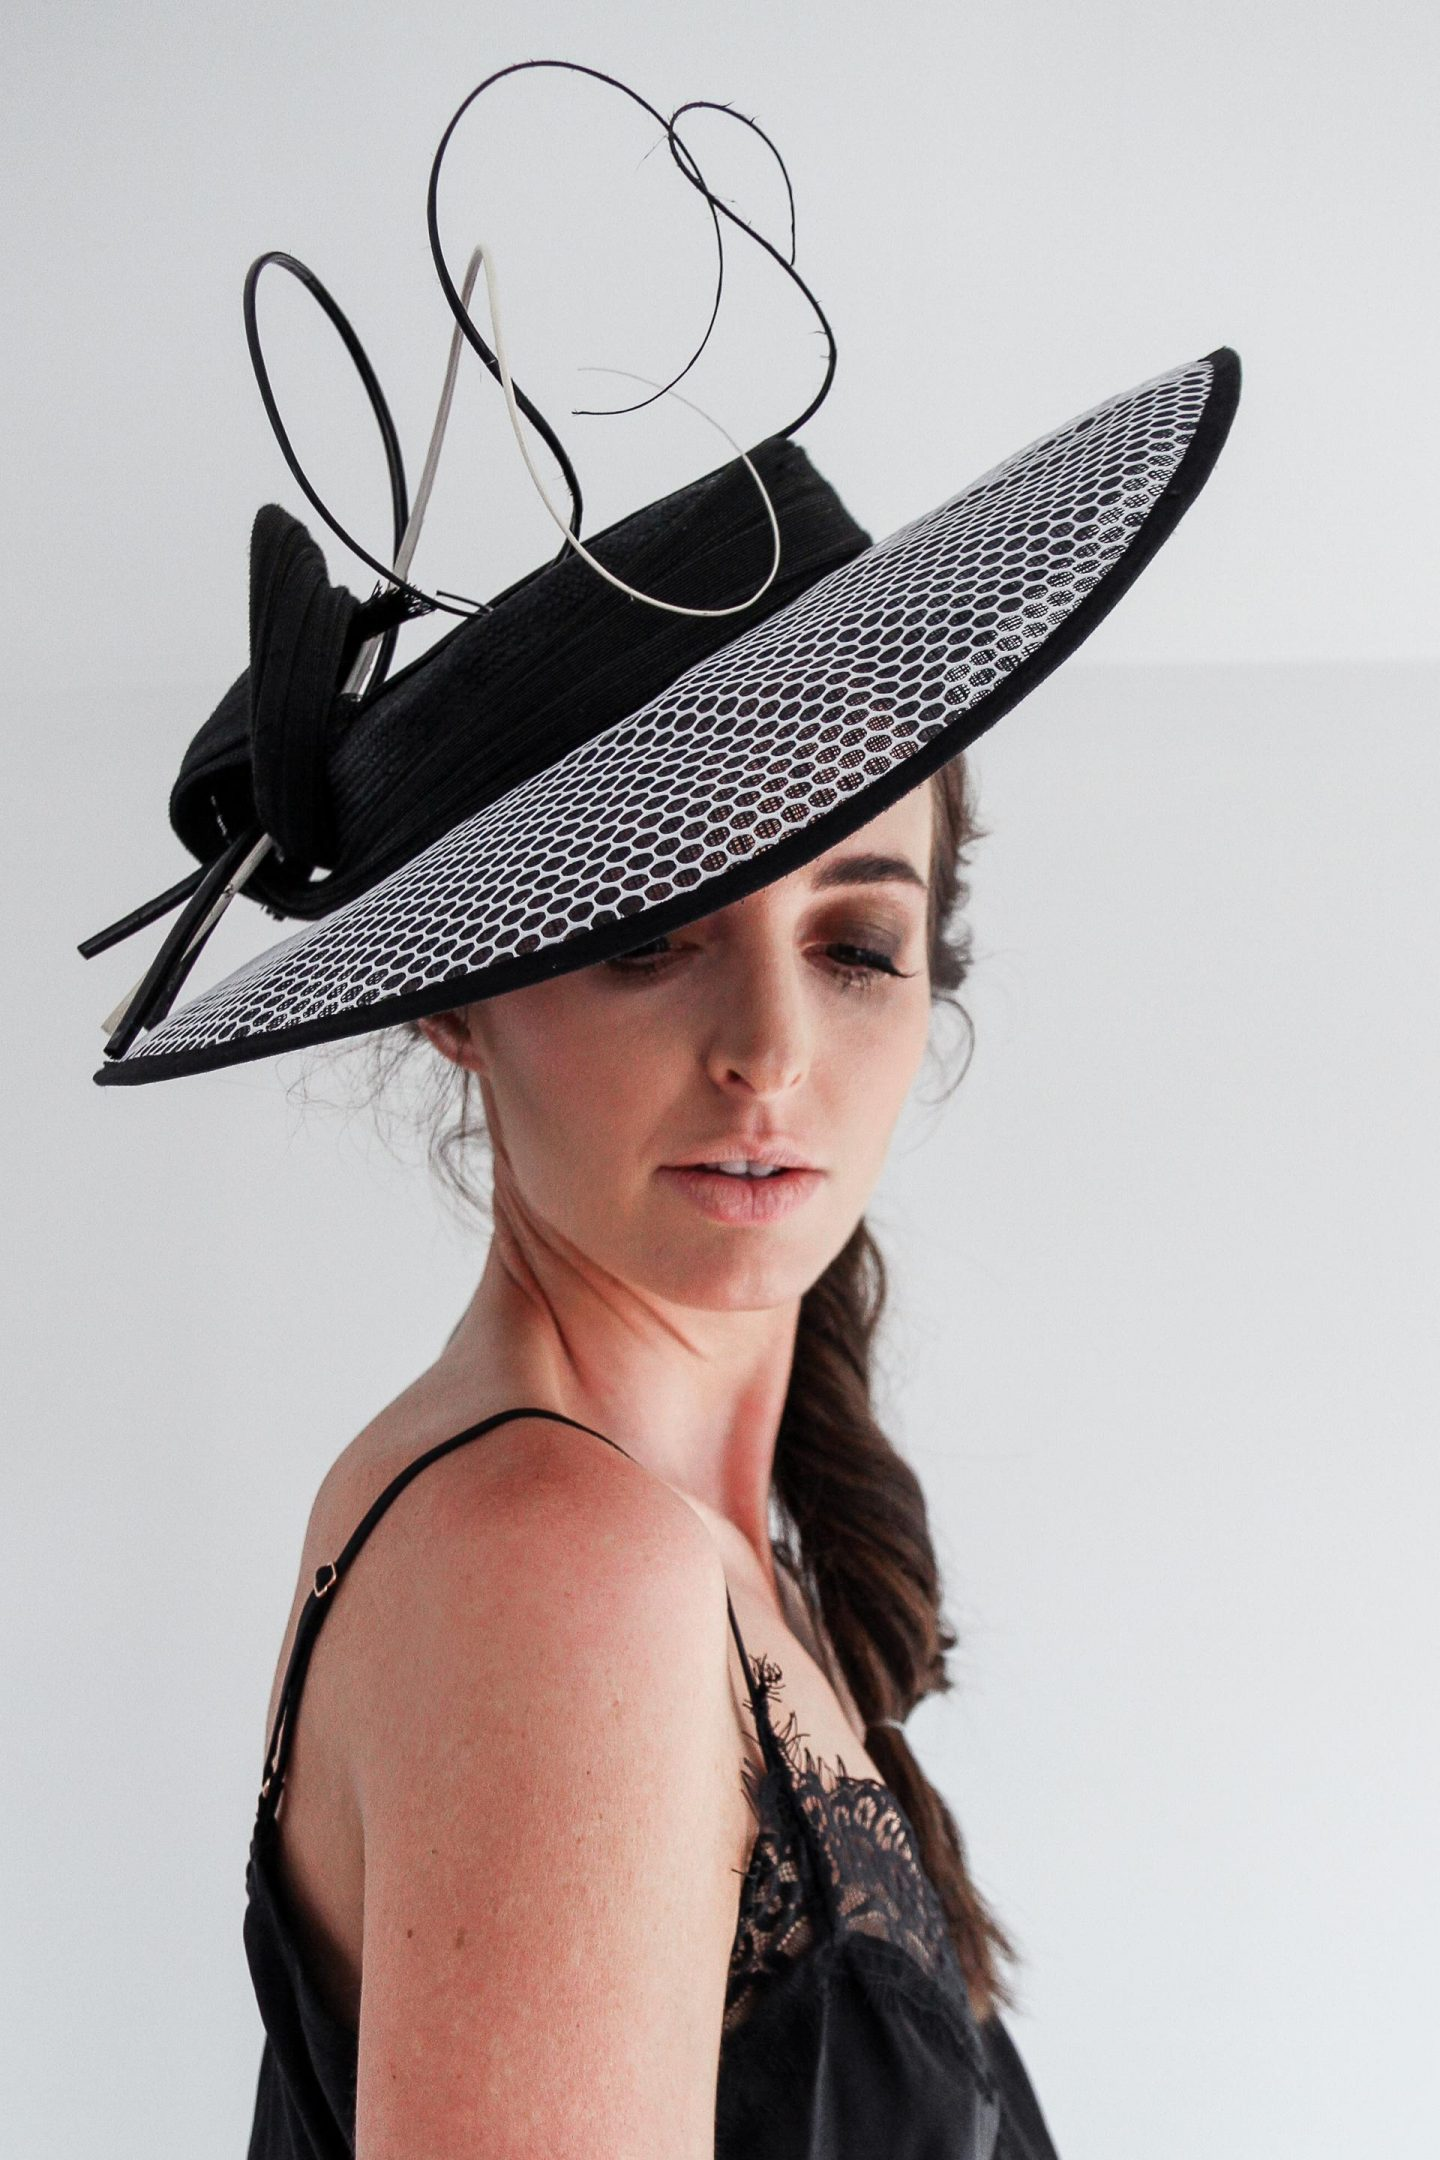 Christine-Baker-Millinery-12-of-44-1440x